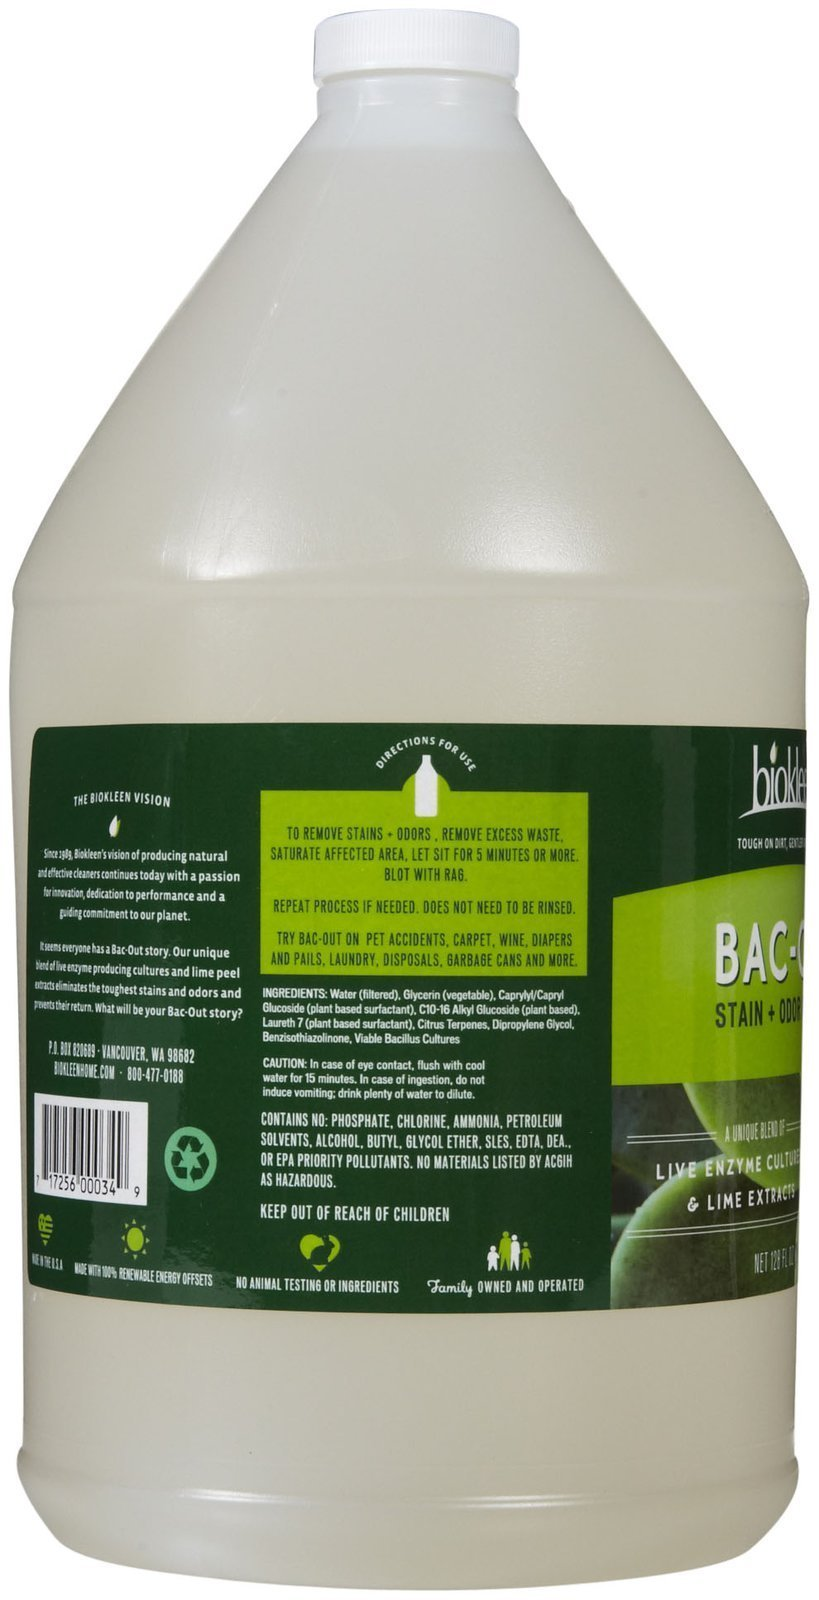 Biokleen Bac-Out Stain+Odor Remover, Destroys Stains & Odors Safely, for Pet Stains, Laundry, Diapers, Wine, Carpets, & More, Eco-Friendly, Non-Toxic, Plant-Based, 128 Ounces by Biokleen (Image #2)